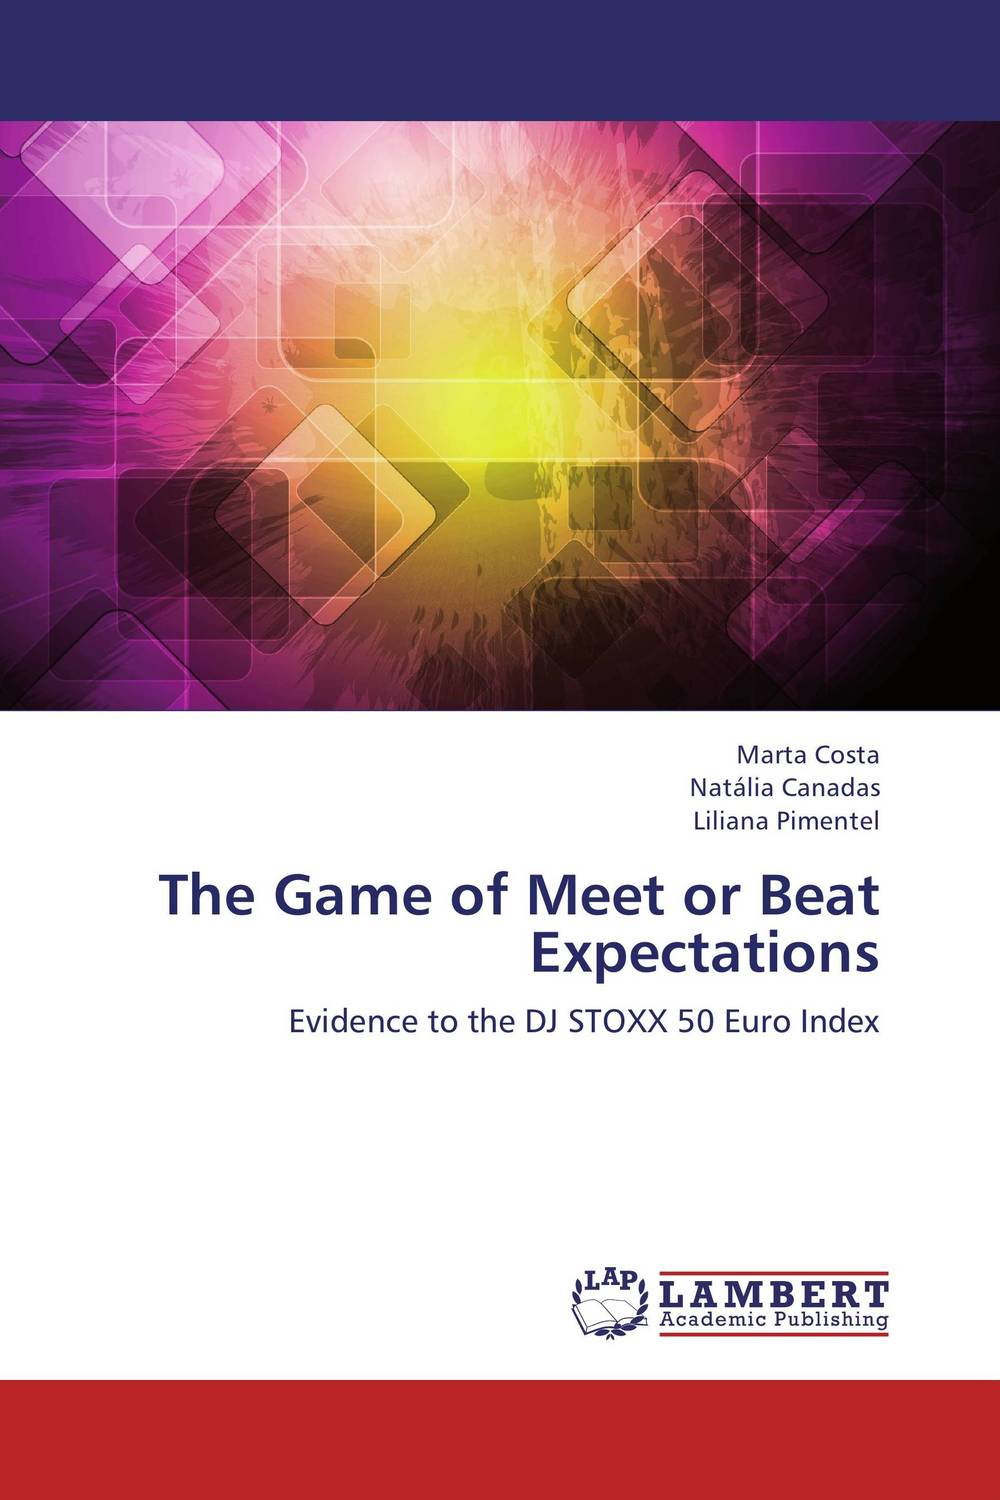 The Game of Meet or Beat Expectations carlos alberto palomino lazo and aimee r kanyankogote extraction of market expectations from option prices